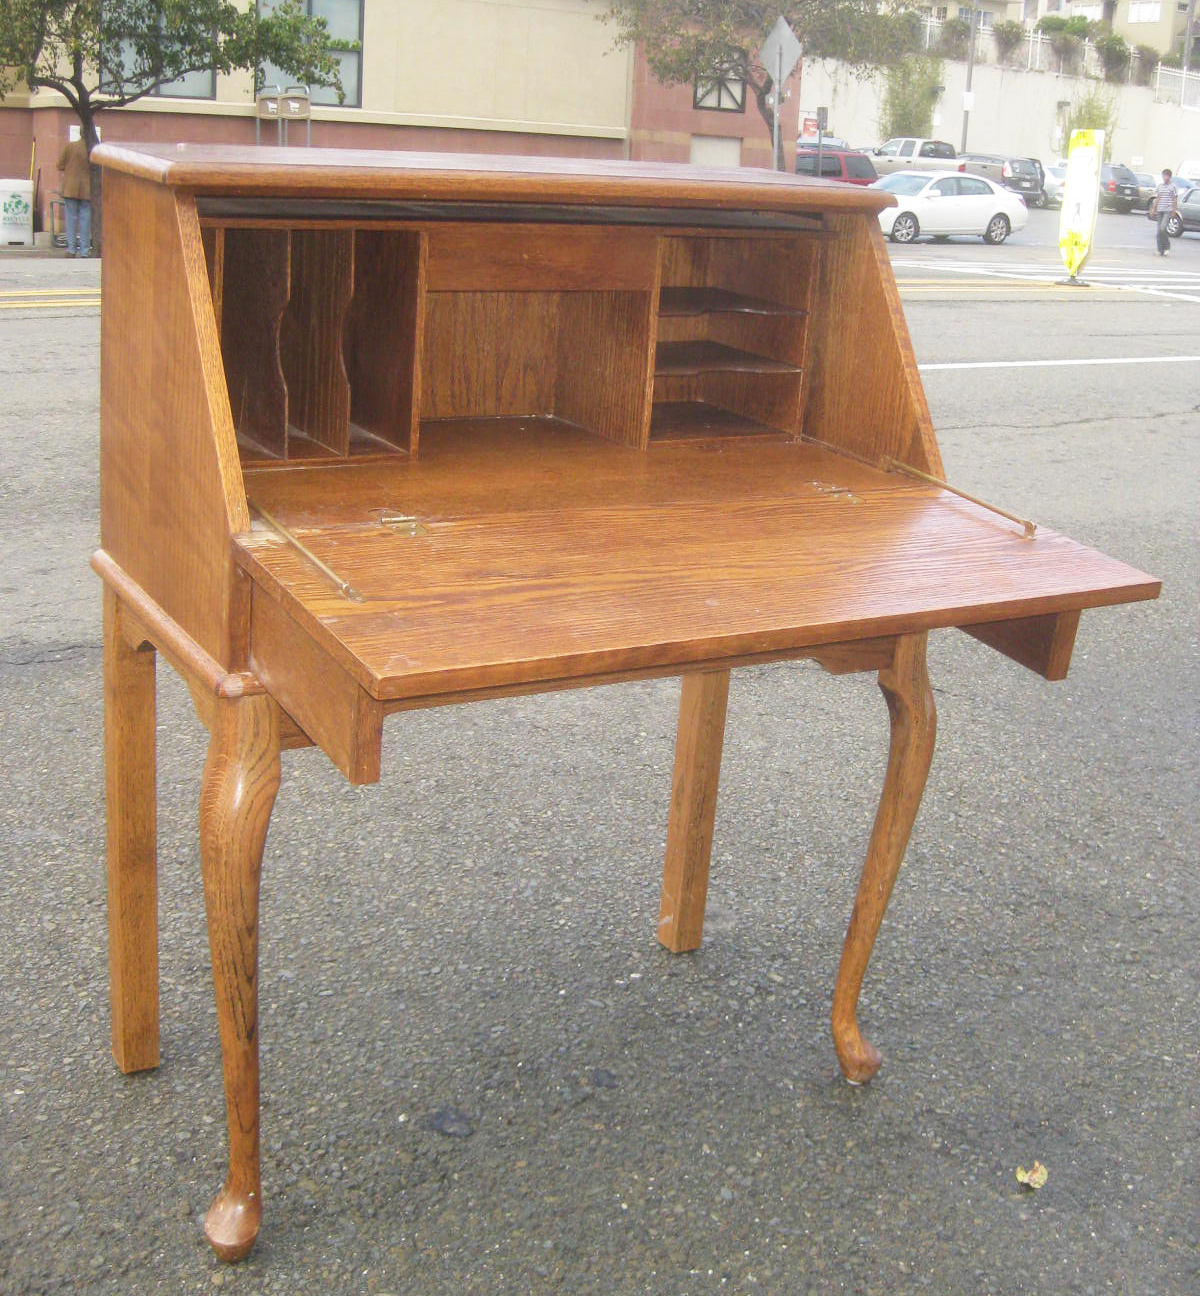 UHURU FURNITURE & COLLECTIBLES: SOLD -Oak Secretary Desk - $100